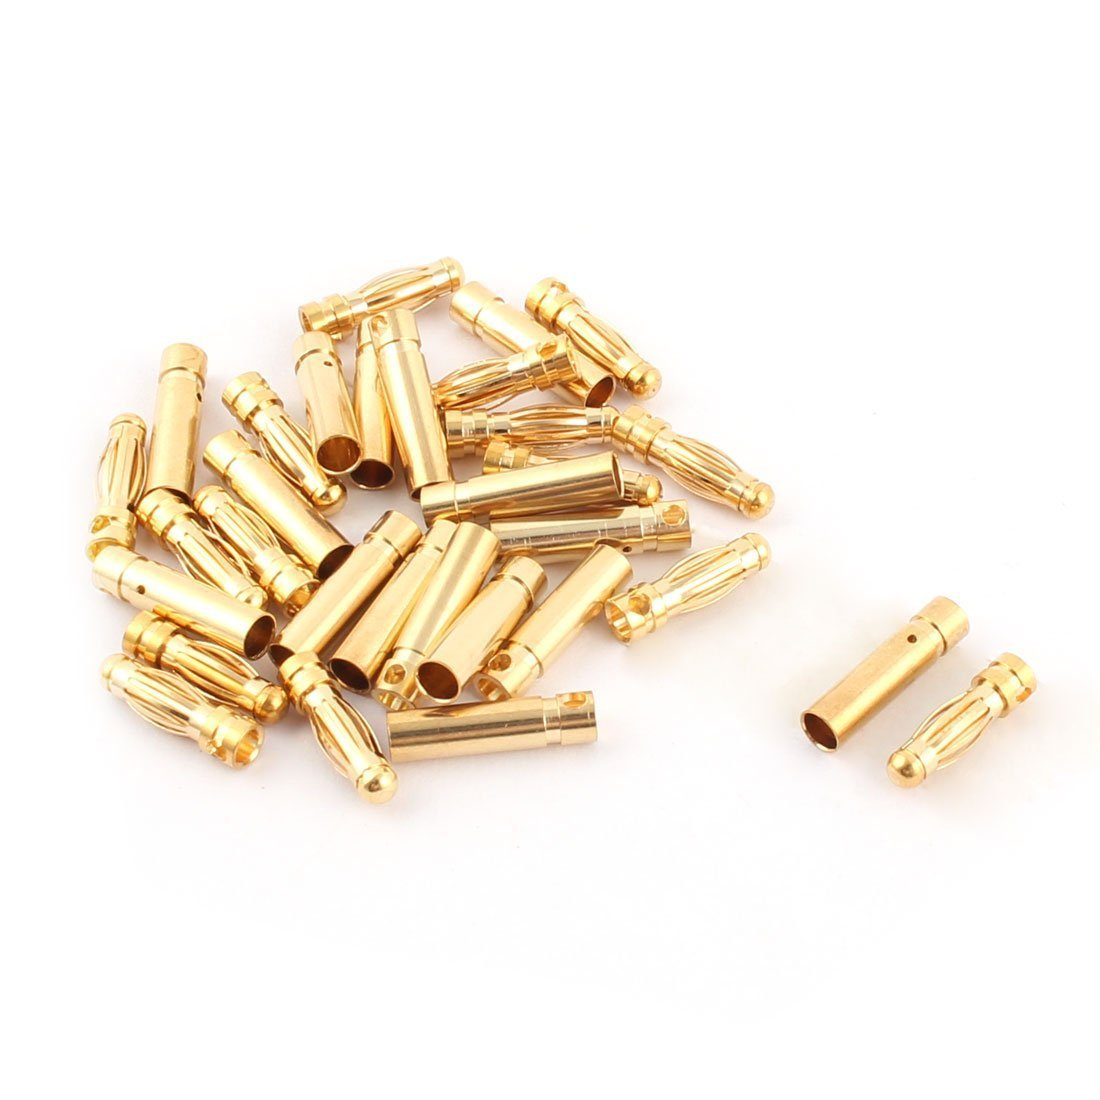 OliYin 30pairs 3.5mm Gold Plated Male Female Banana Plug Bullet Connector Replacements for ESC Battery and Motor